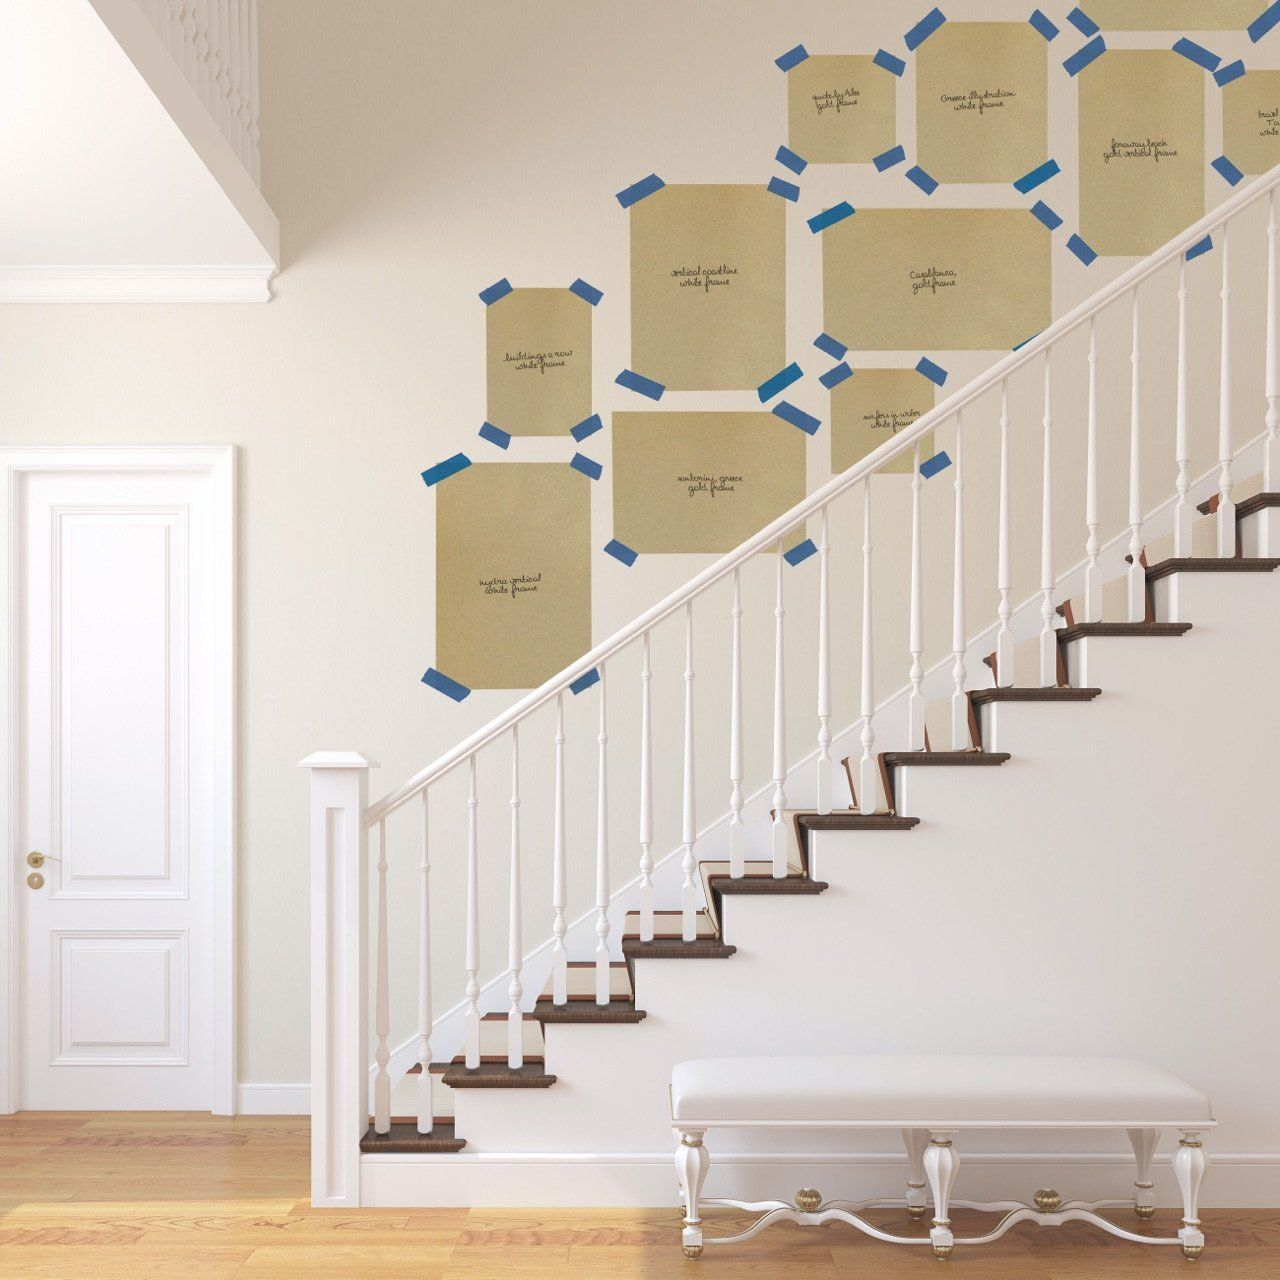 Staircase Gallery Wall - Design Tips & Layouts